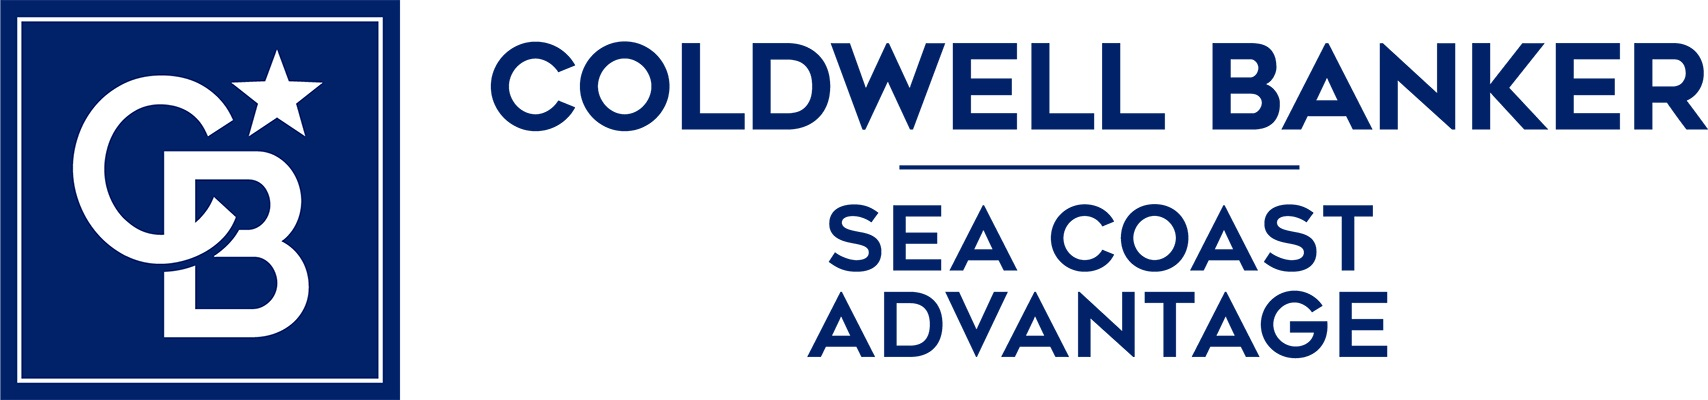 Kimberly Lewis - Coldwell Banker Sea Coast Advantage Realty Logo